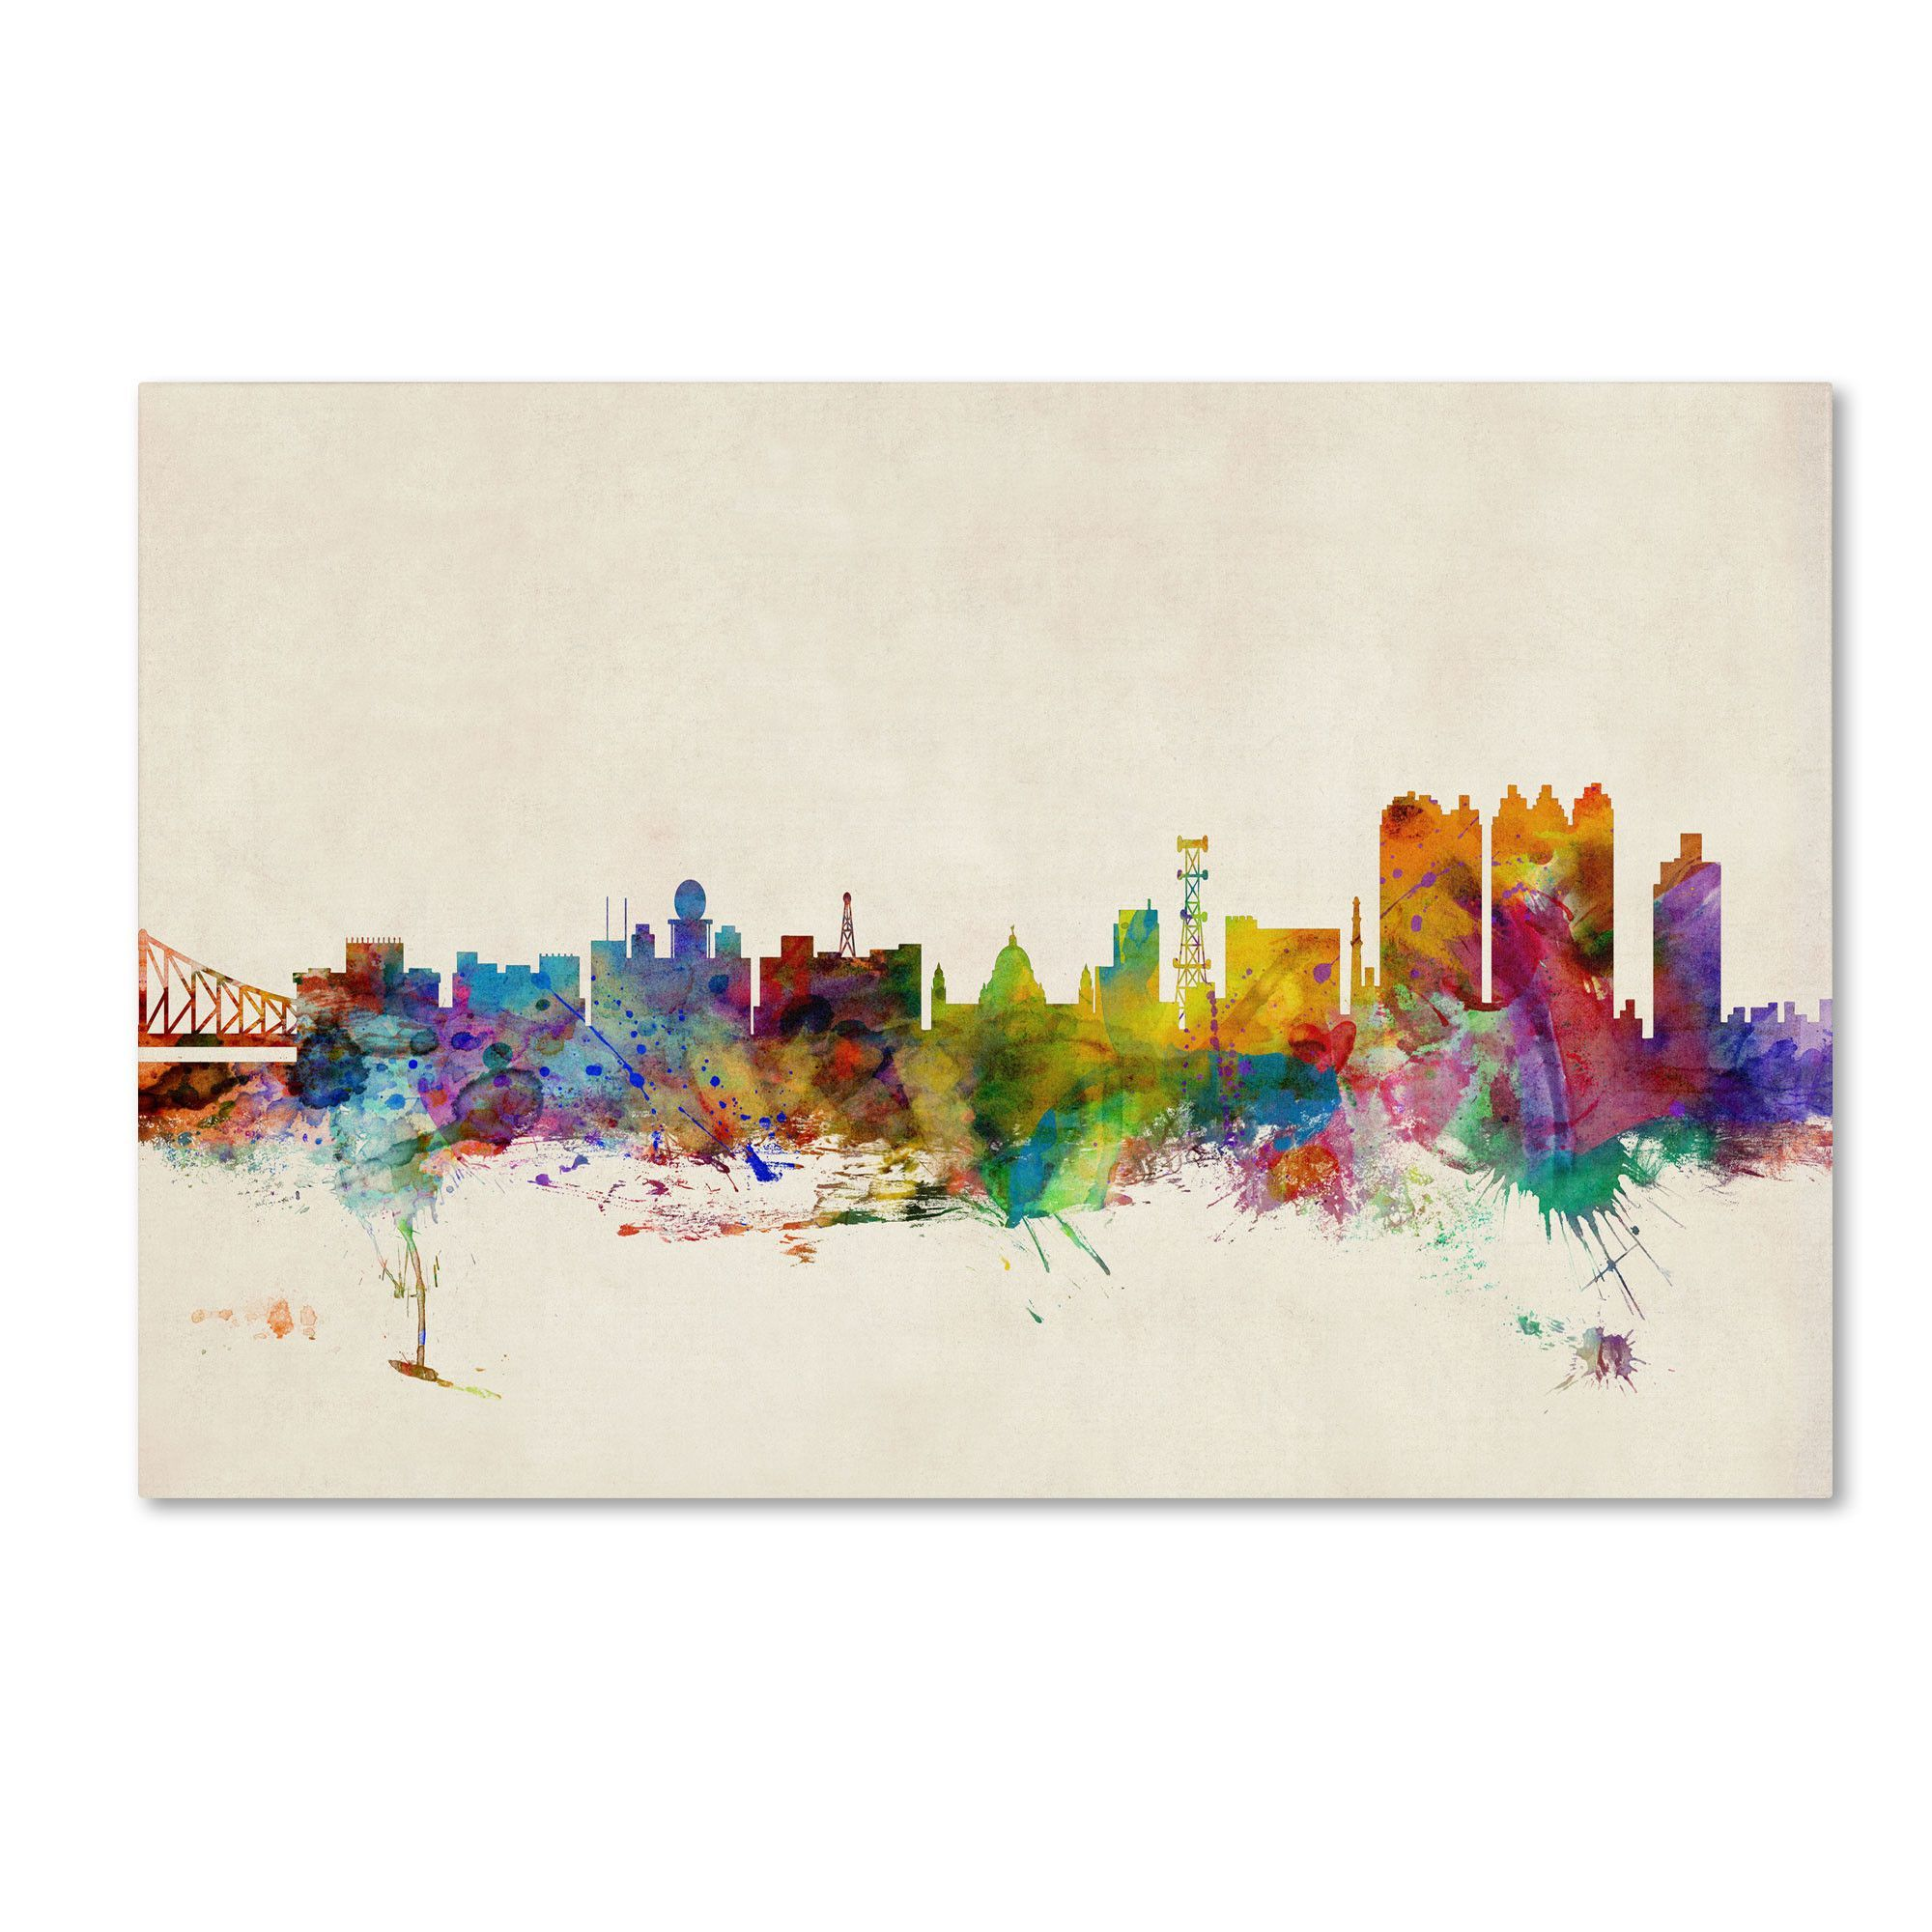 Calcutta watercolor skyline by michael tompsett painting print on calcutta watercolor skyline by michael tompsett painting print on wrapped canvas altavistaventures Image collections